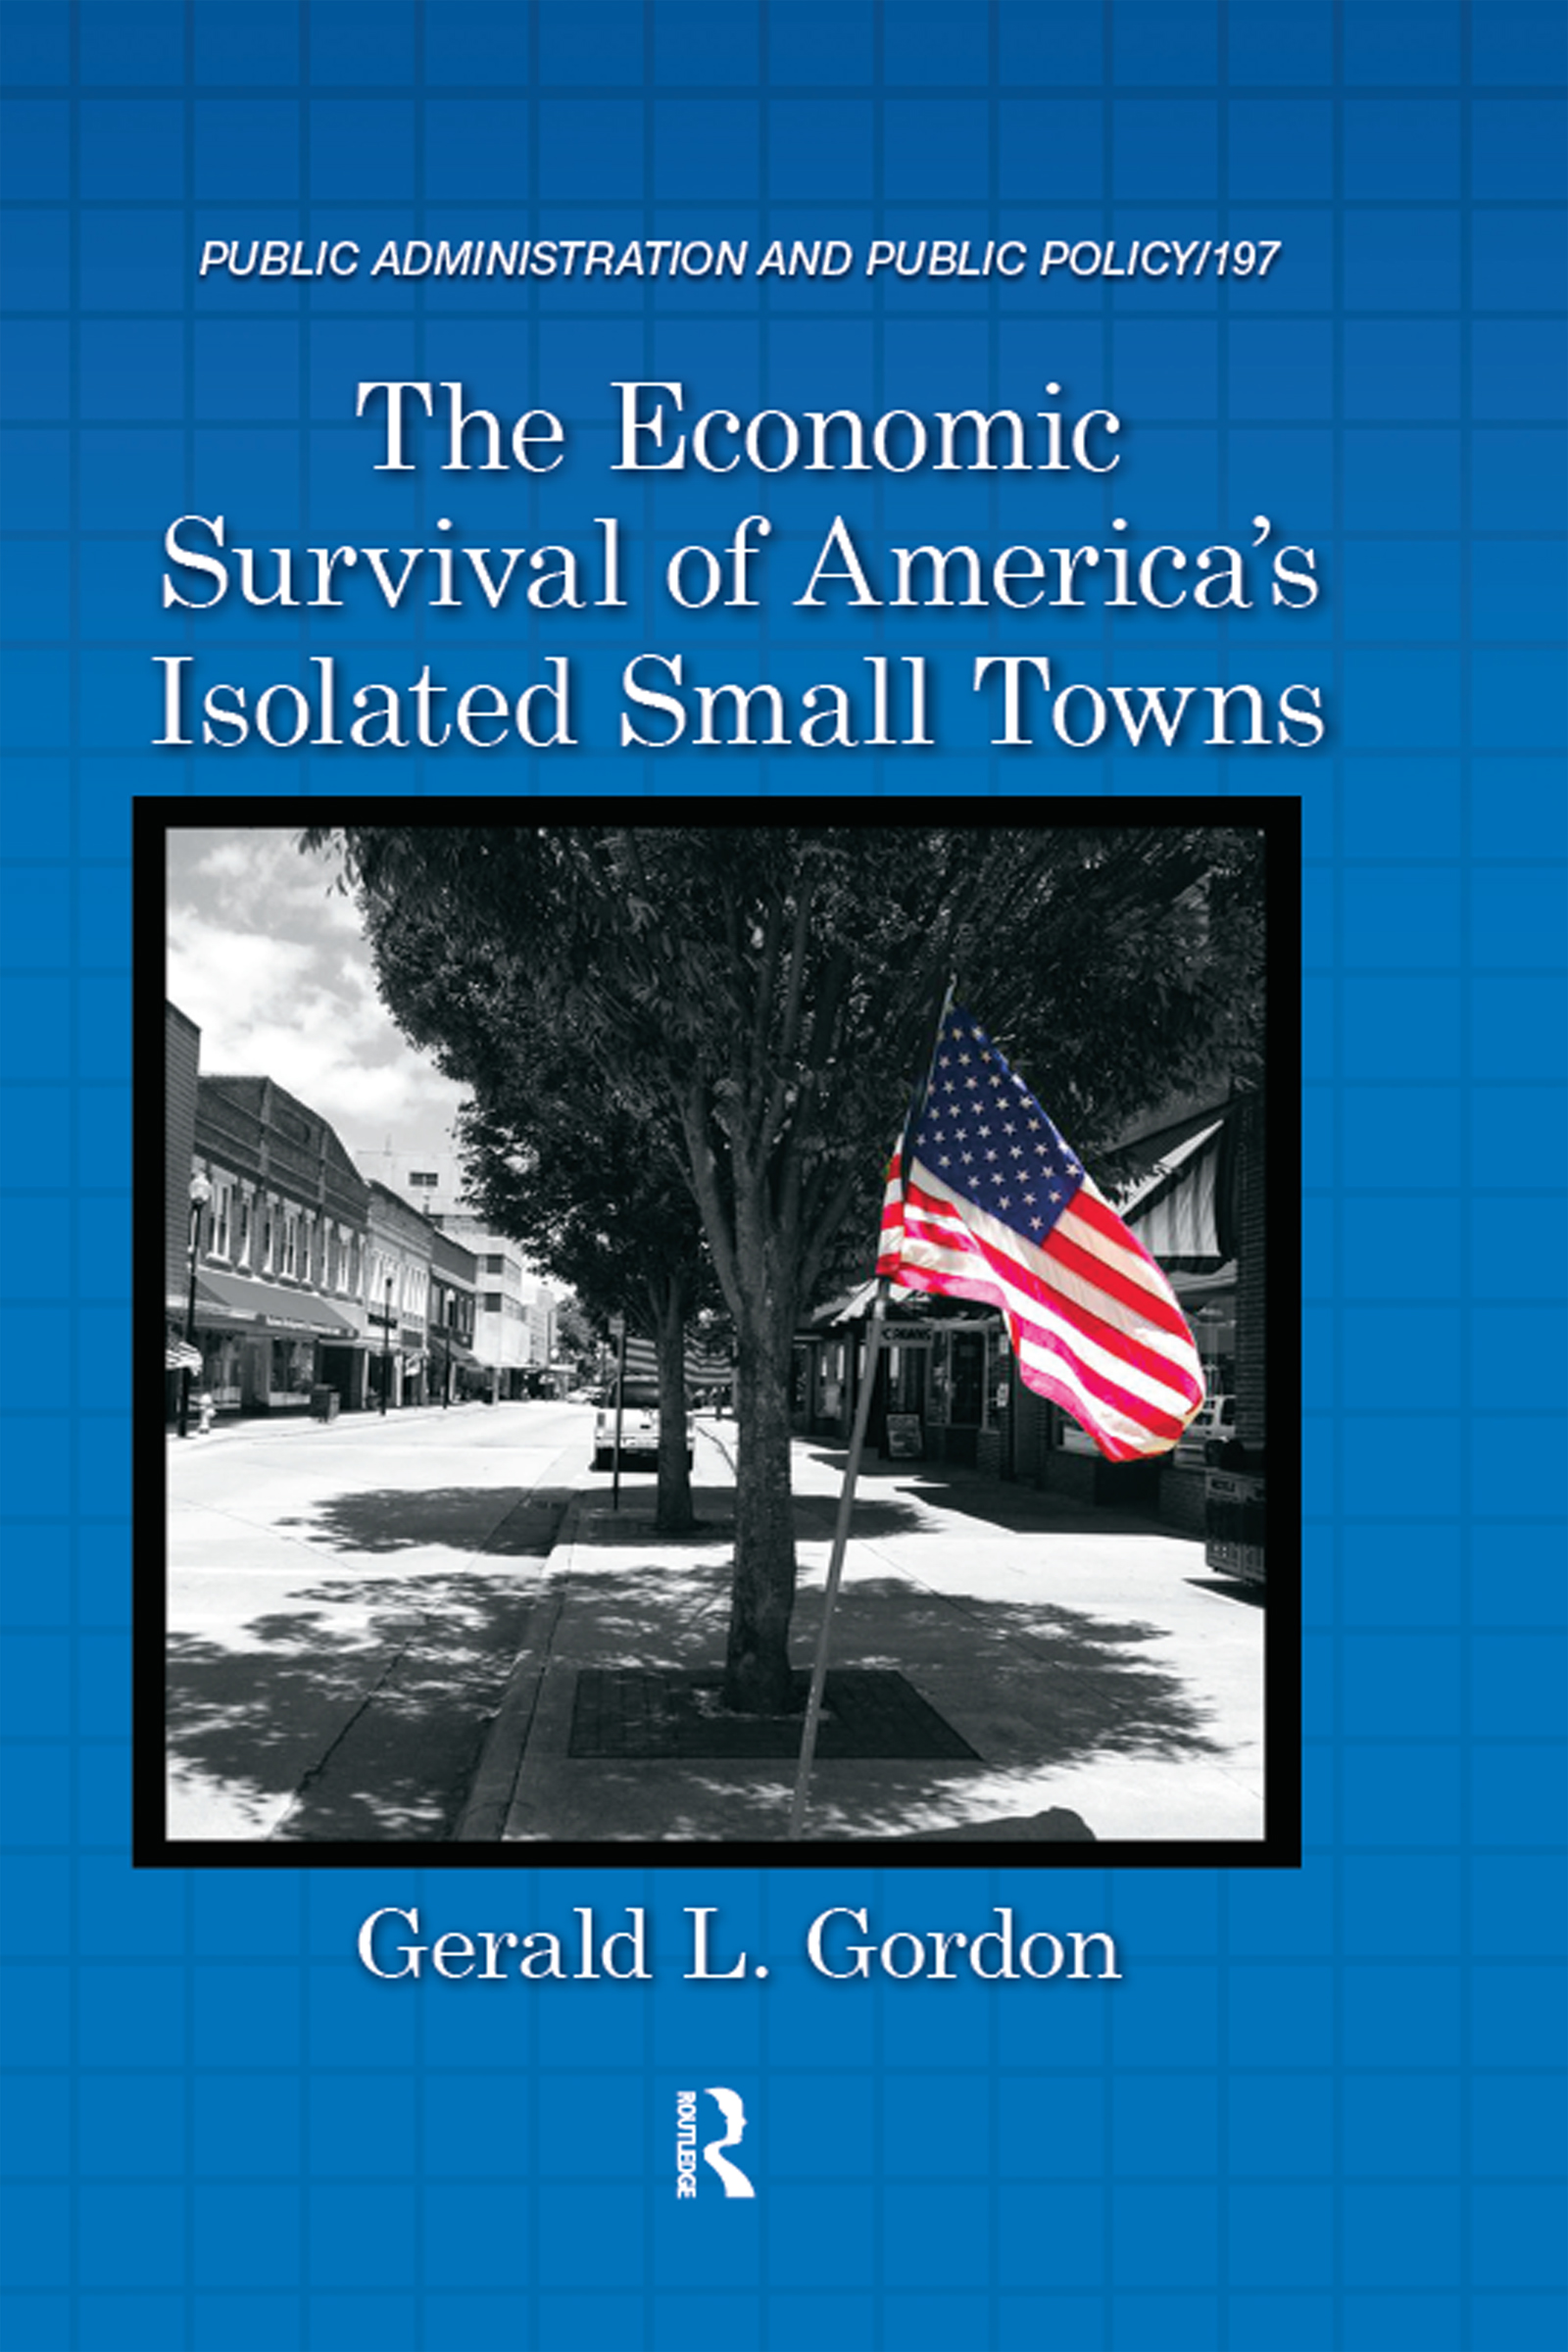 Conclusions about Growth in America's Small and Isolated Cities ... The Relevance of Lessons Learned in Micropolitan Cities